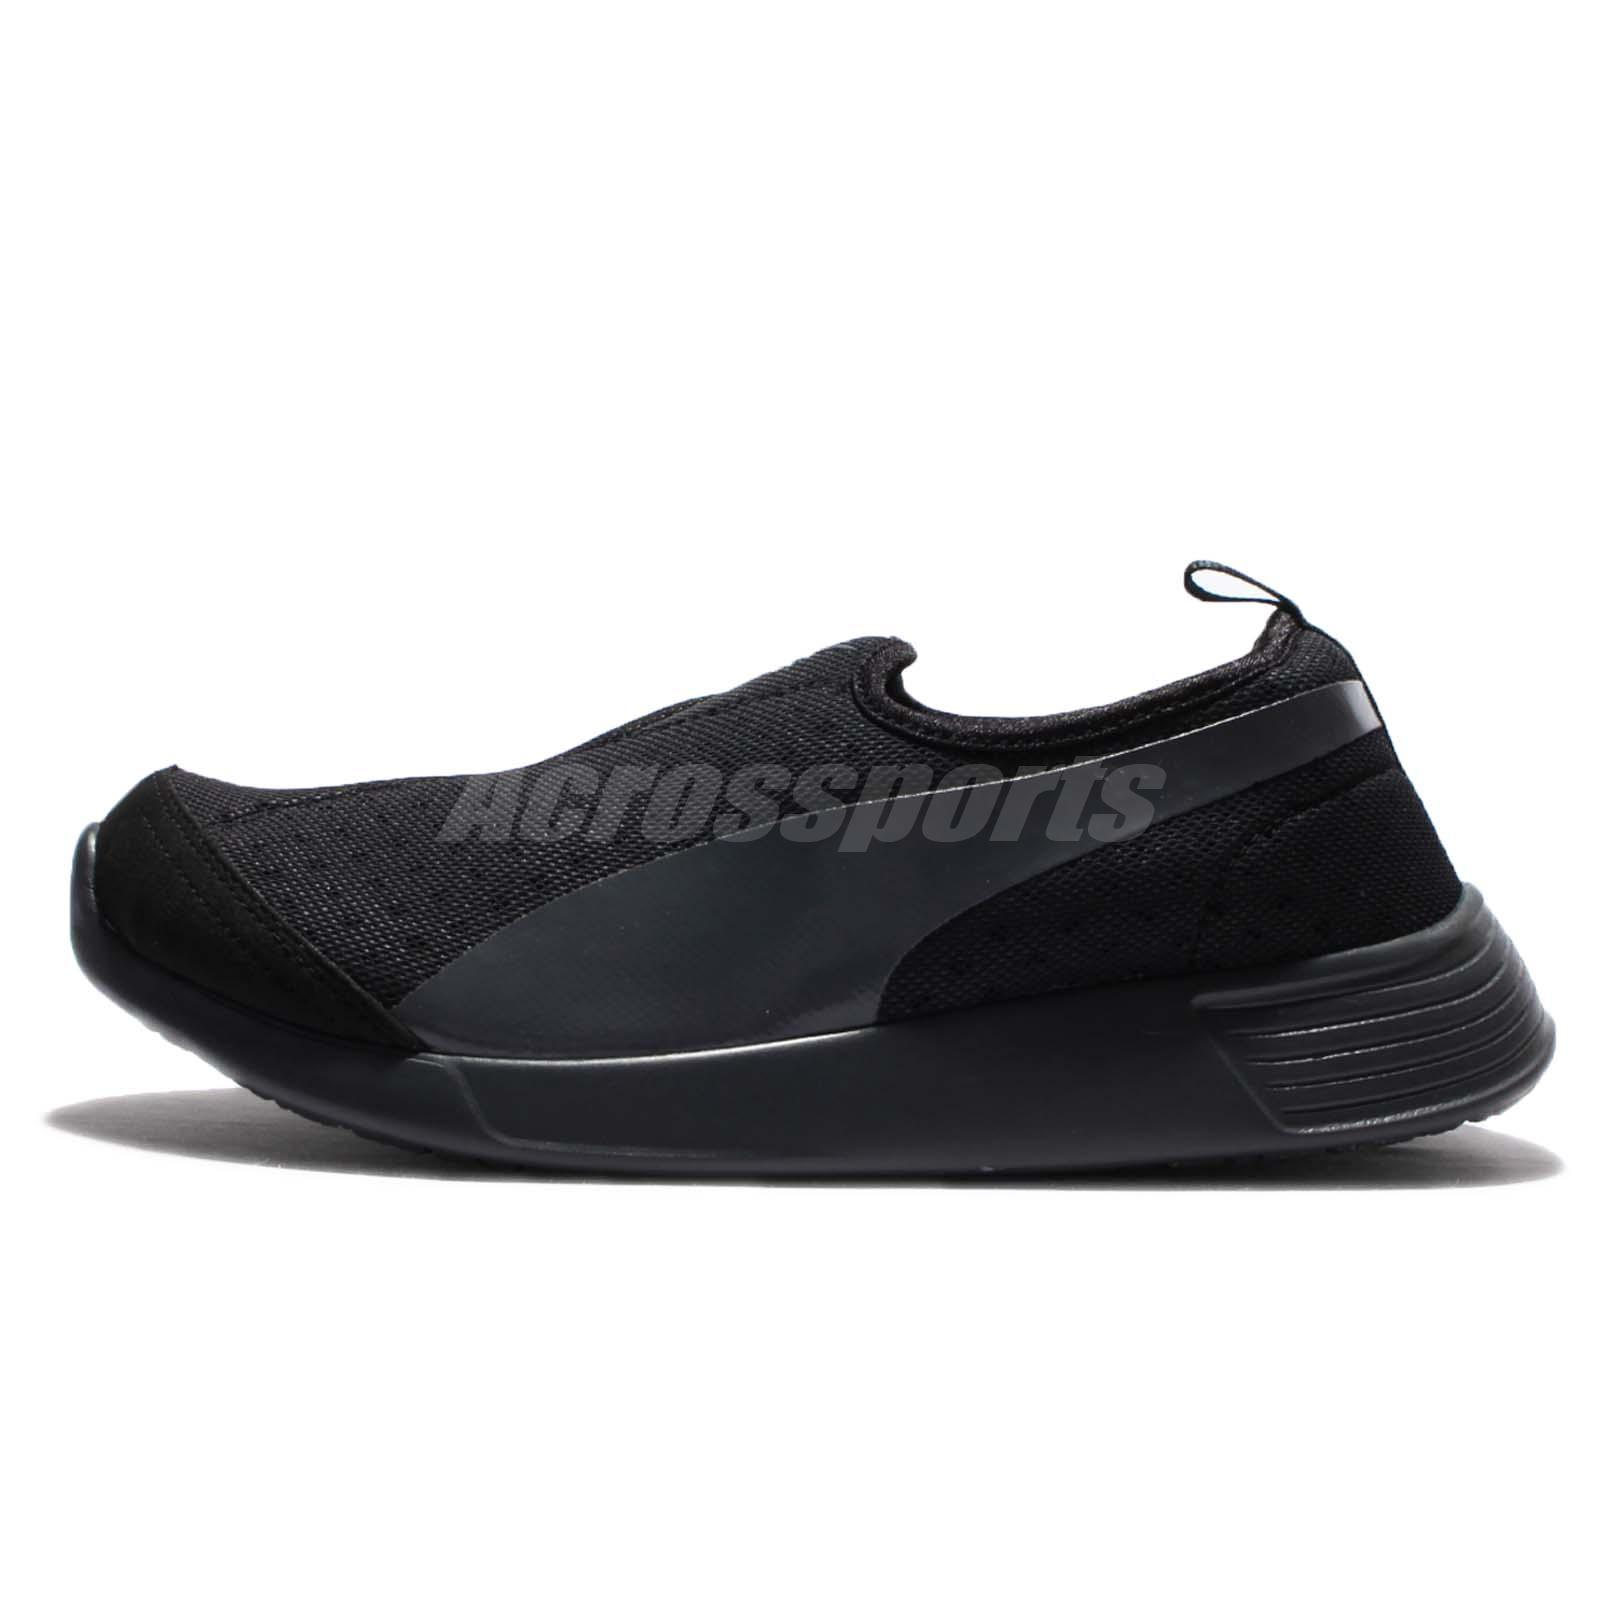 Puma ST Trainer EVO Slip-On Evolution Triple Black Mens Running Shoes  360482-05 08b50a18fa69c